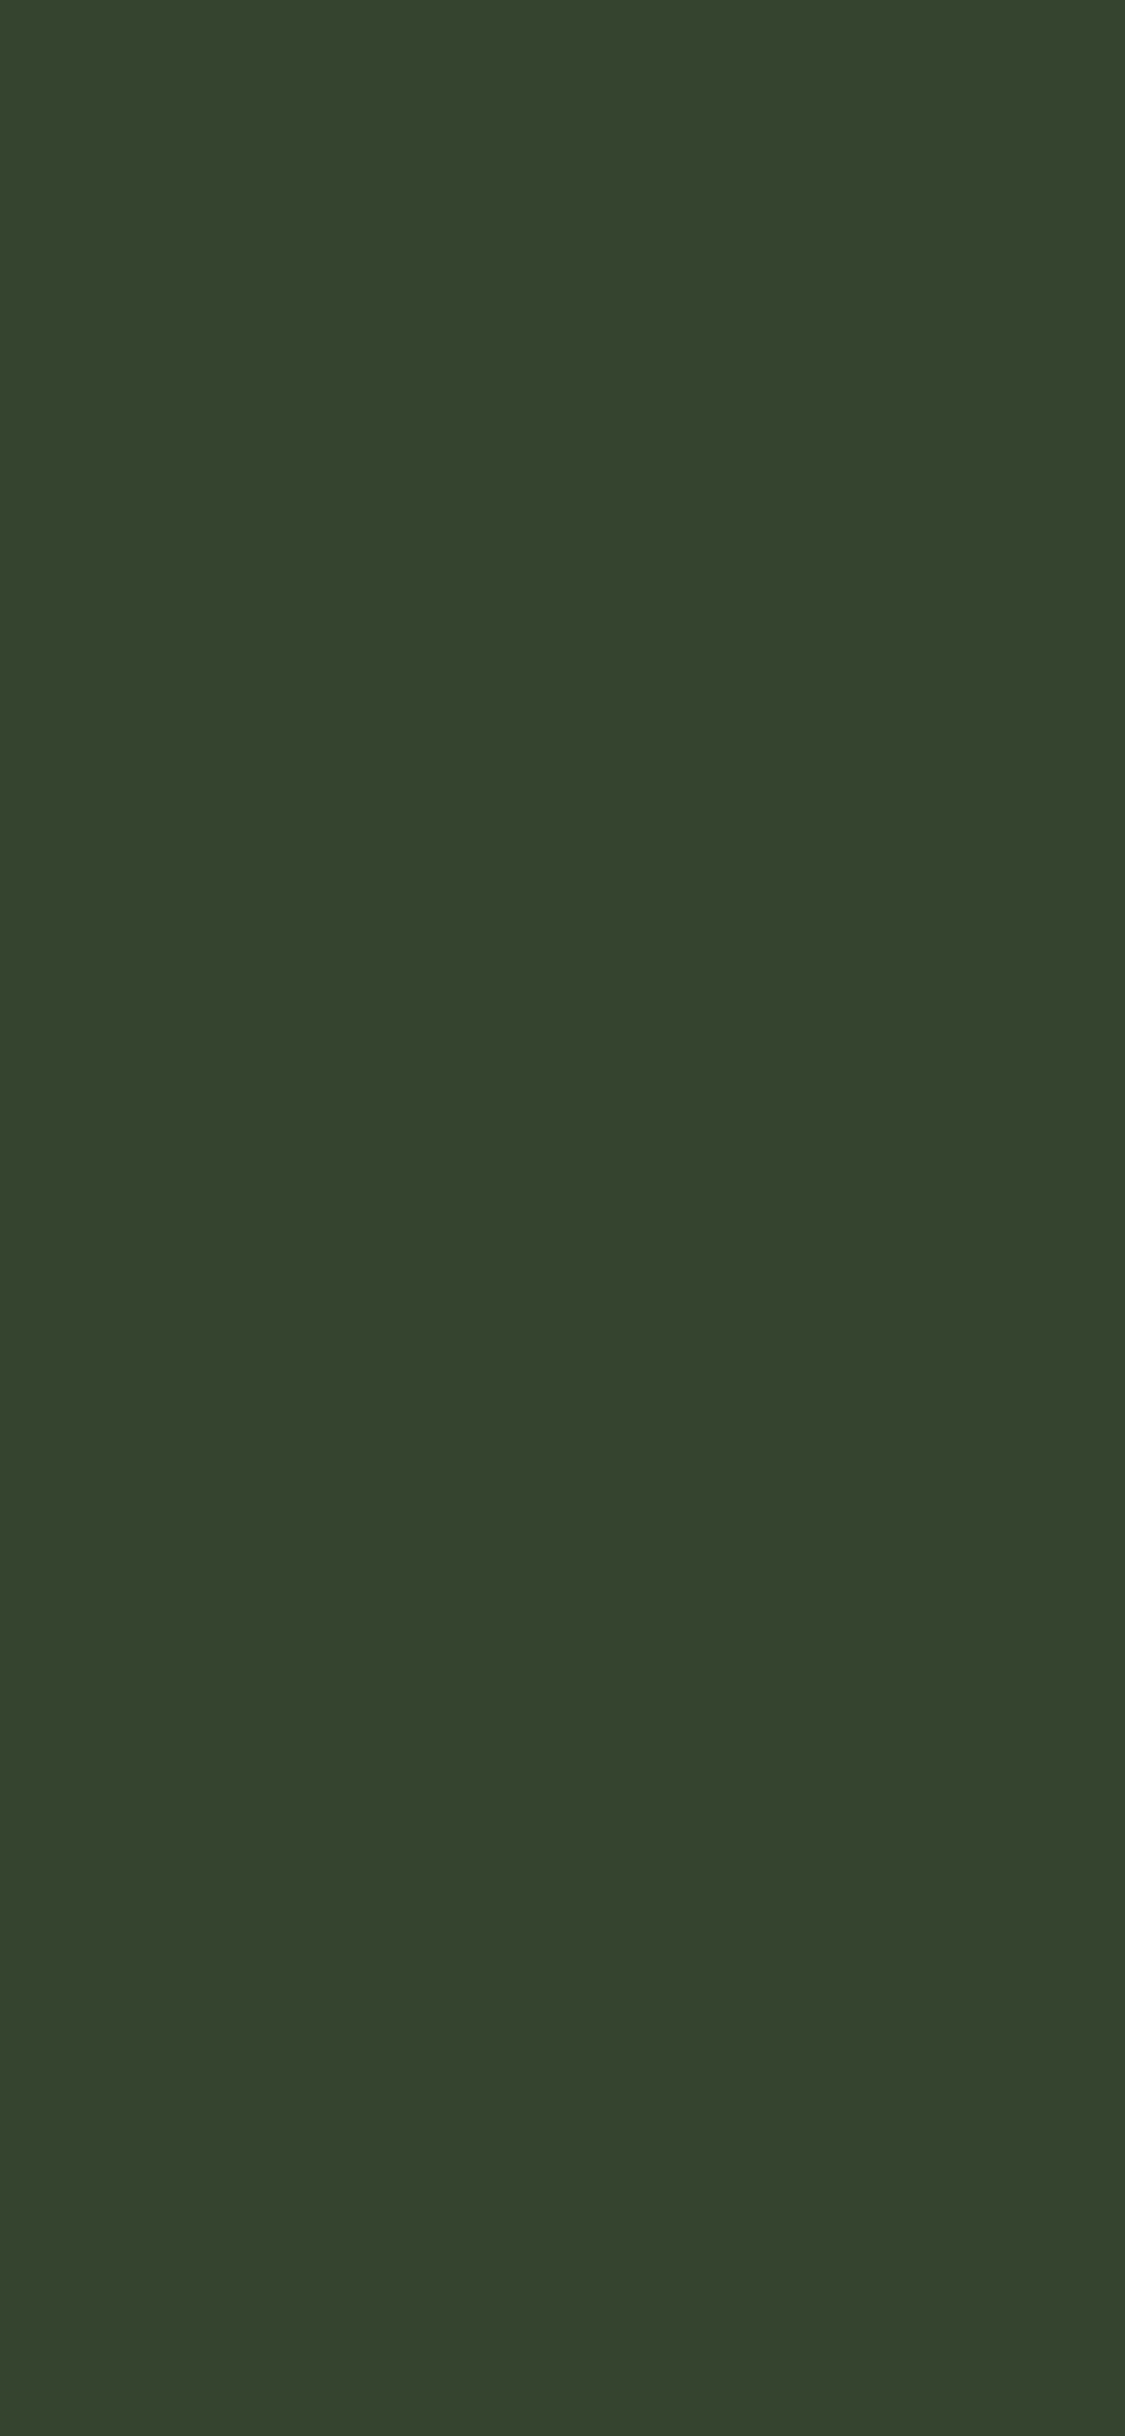 1125x2436 Kombu Green Solid Color Background